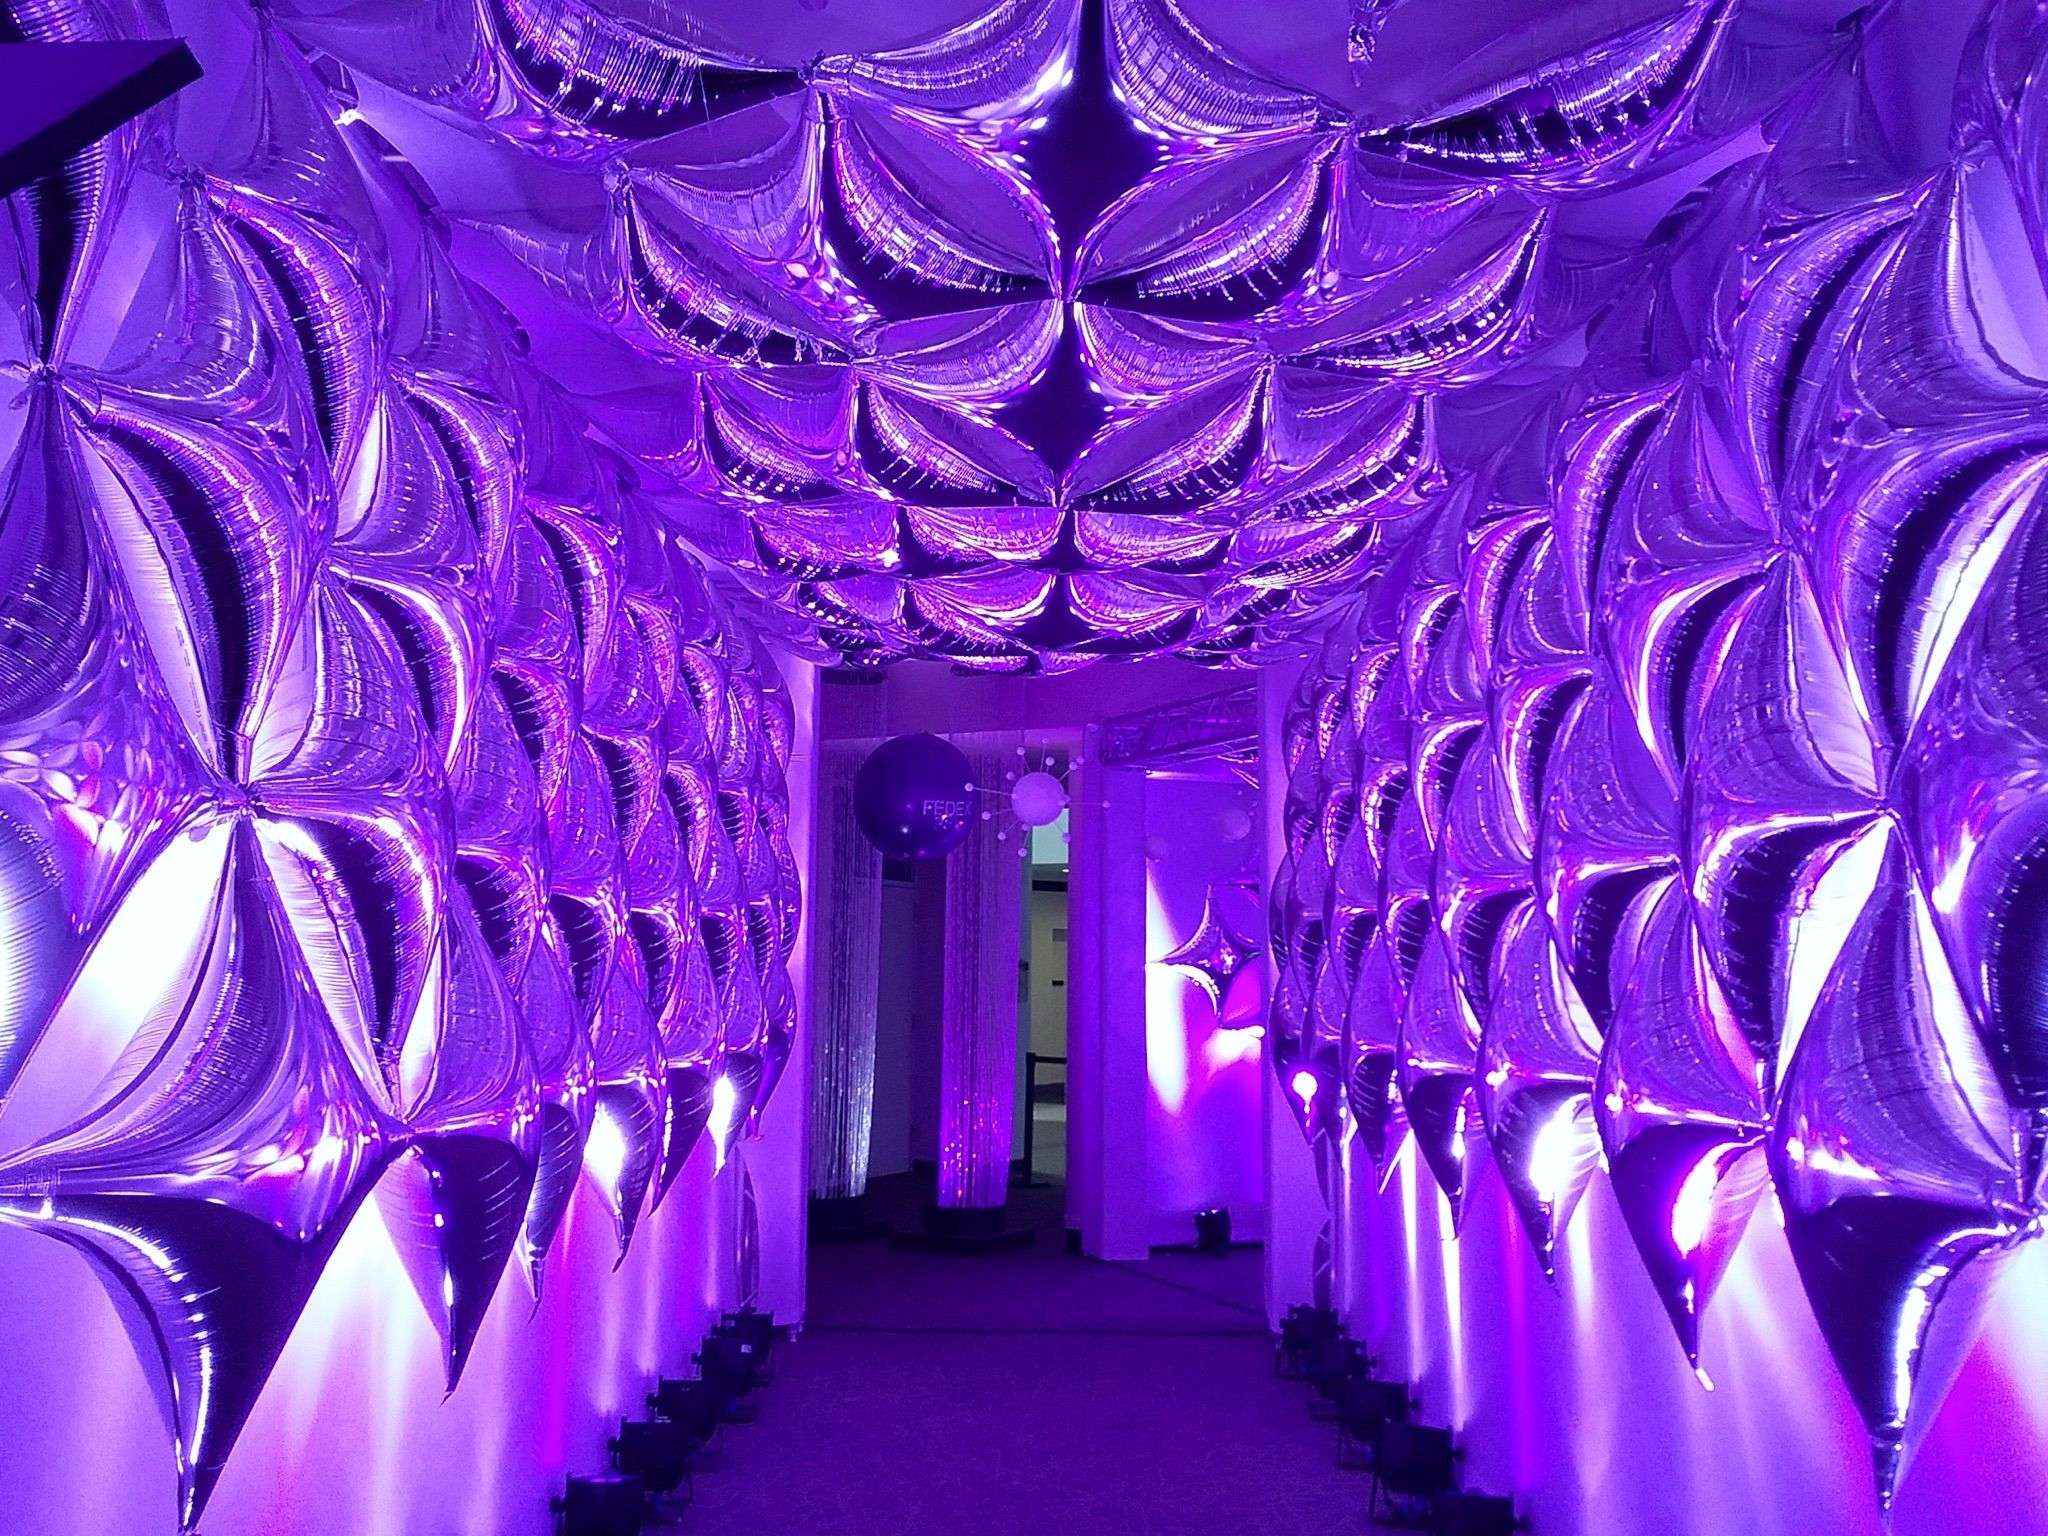 Glowing Purple Futuristic Modern Entryway For Corporate Event